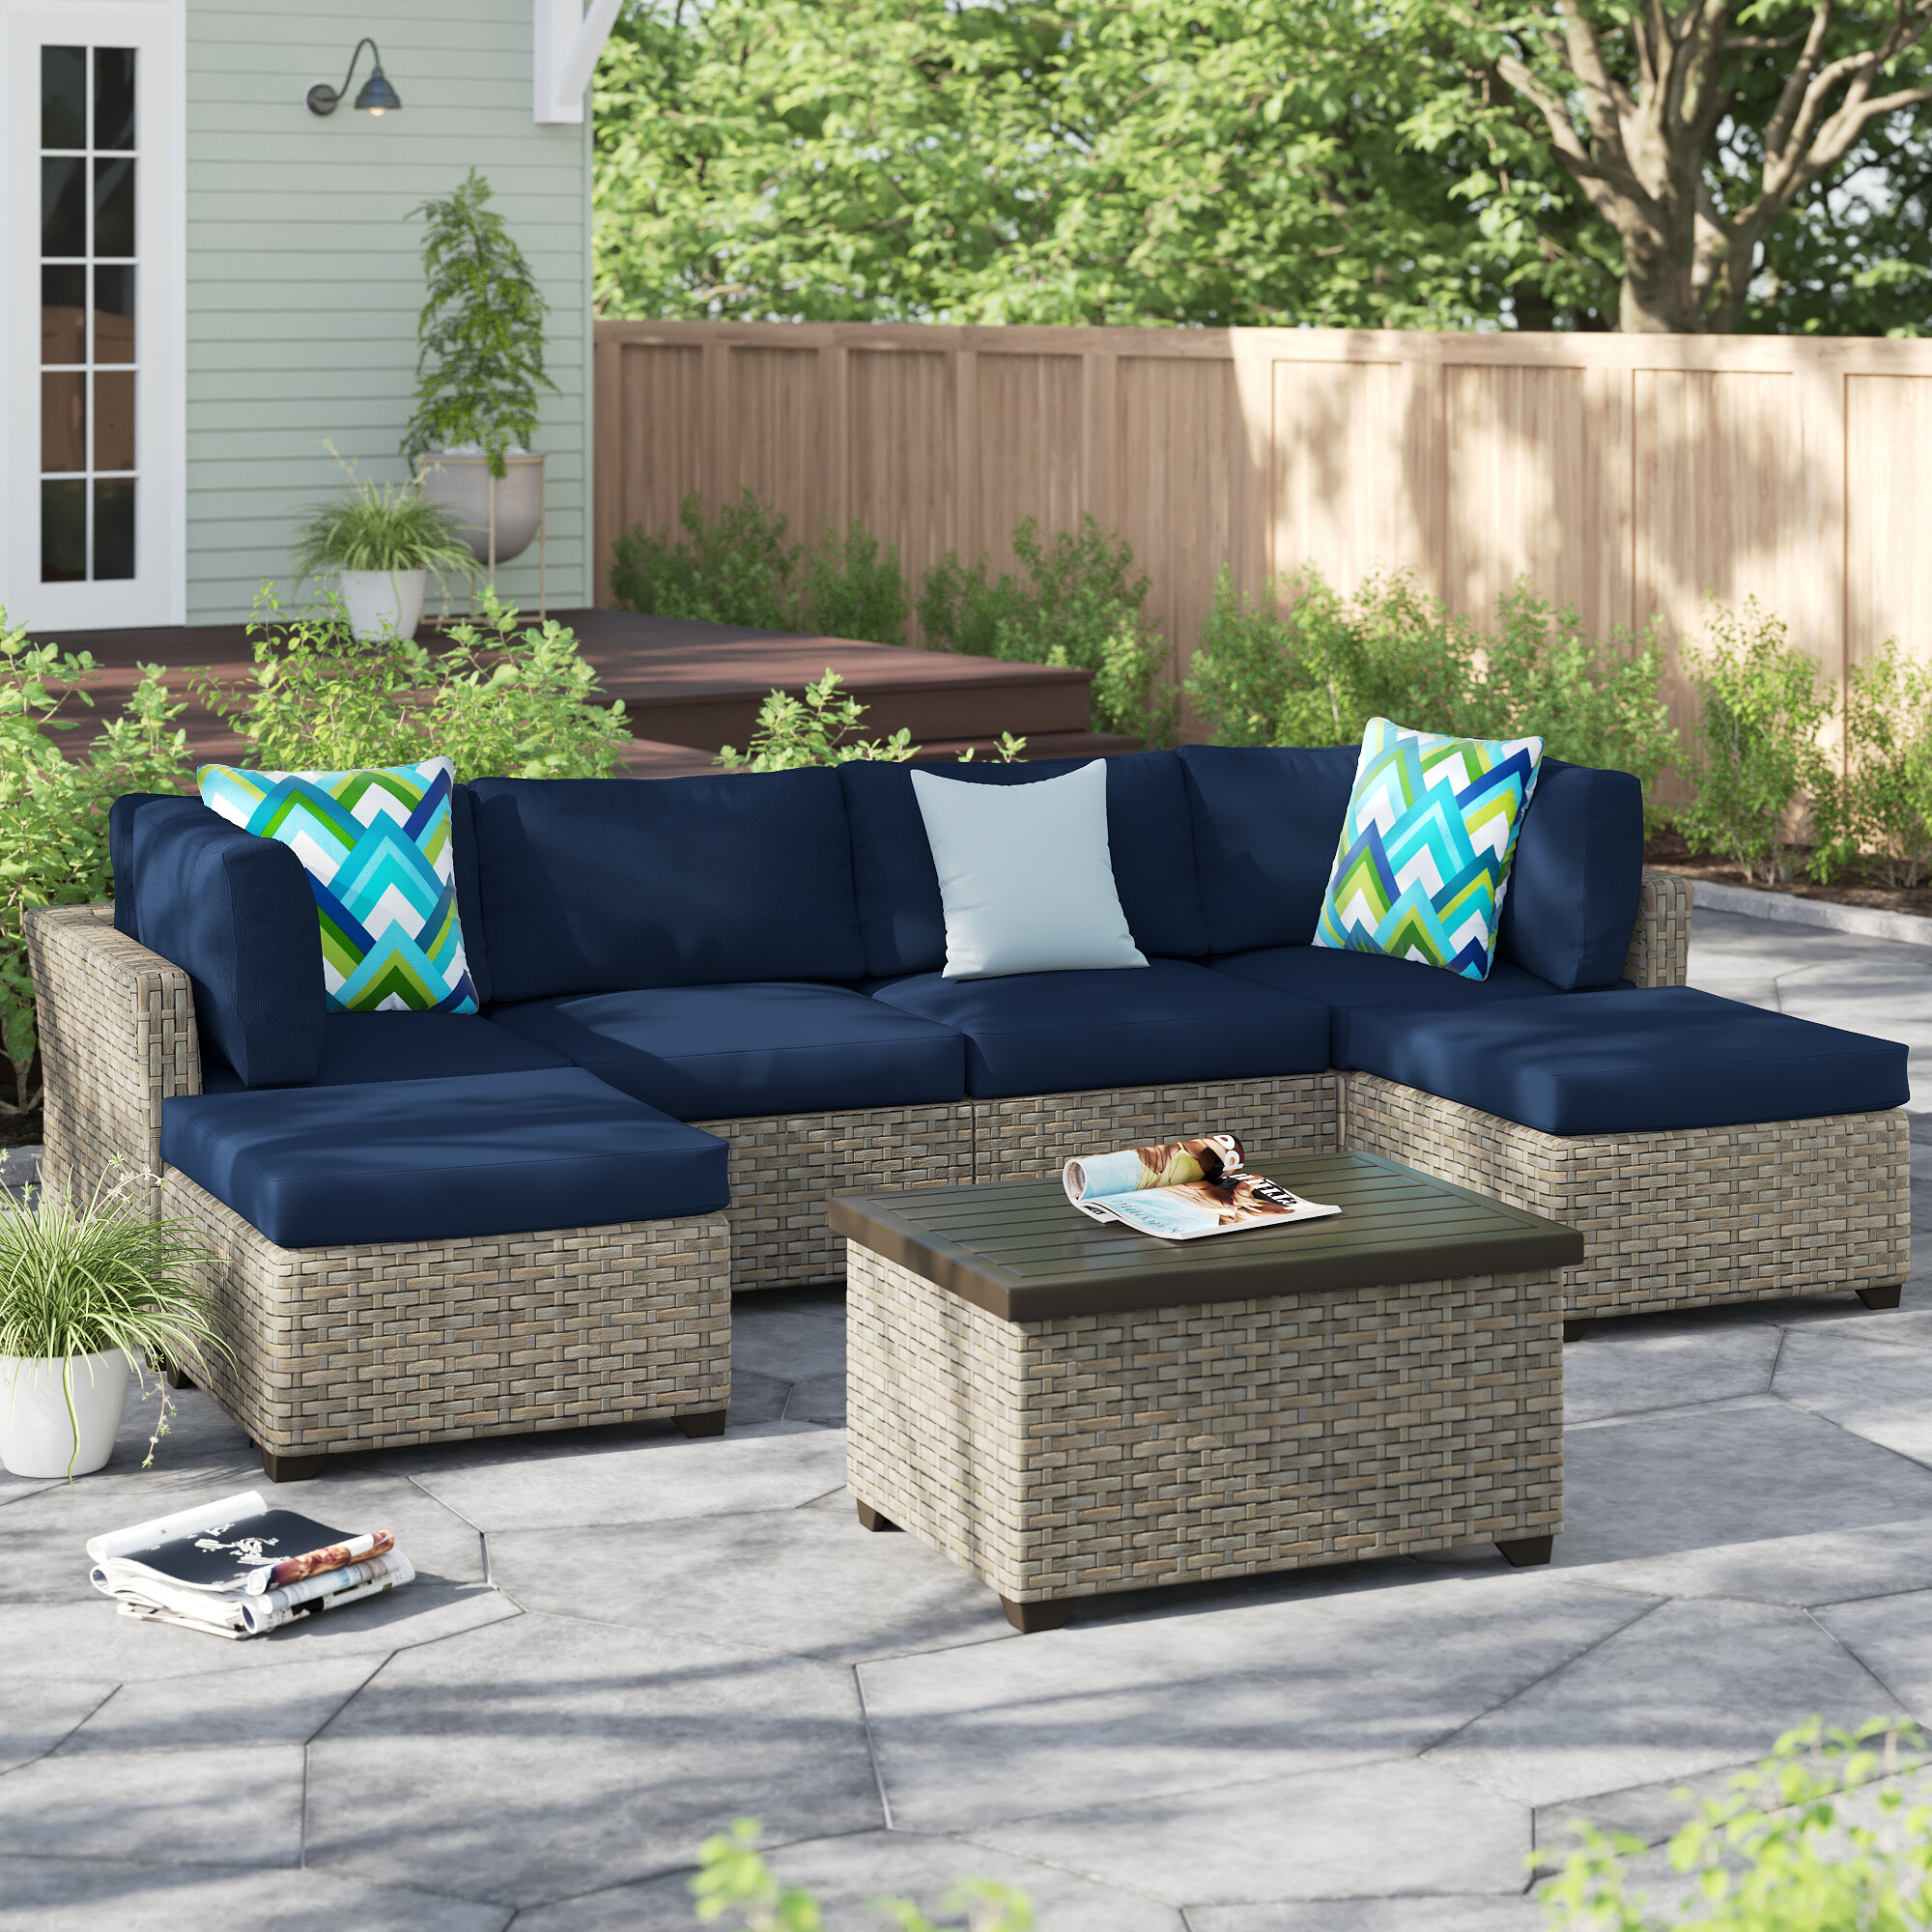 Sol 72 Outdoor Rochford 7 Piece Rattan Sectional Seating Group With Cushions Reviews Wayfair